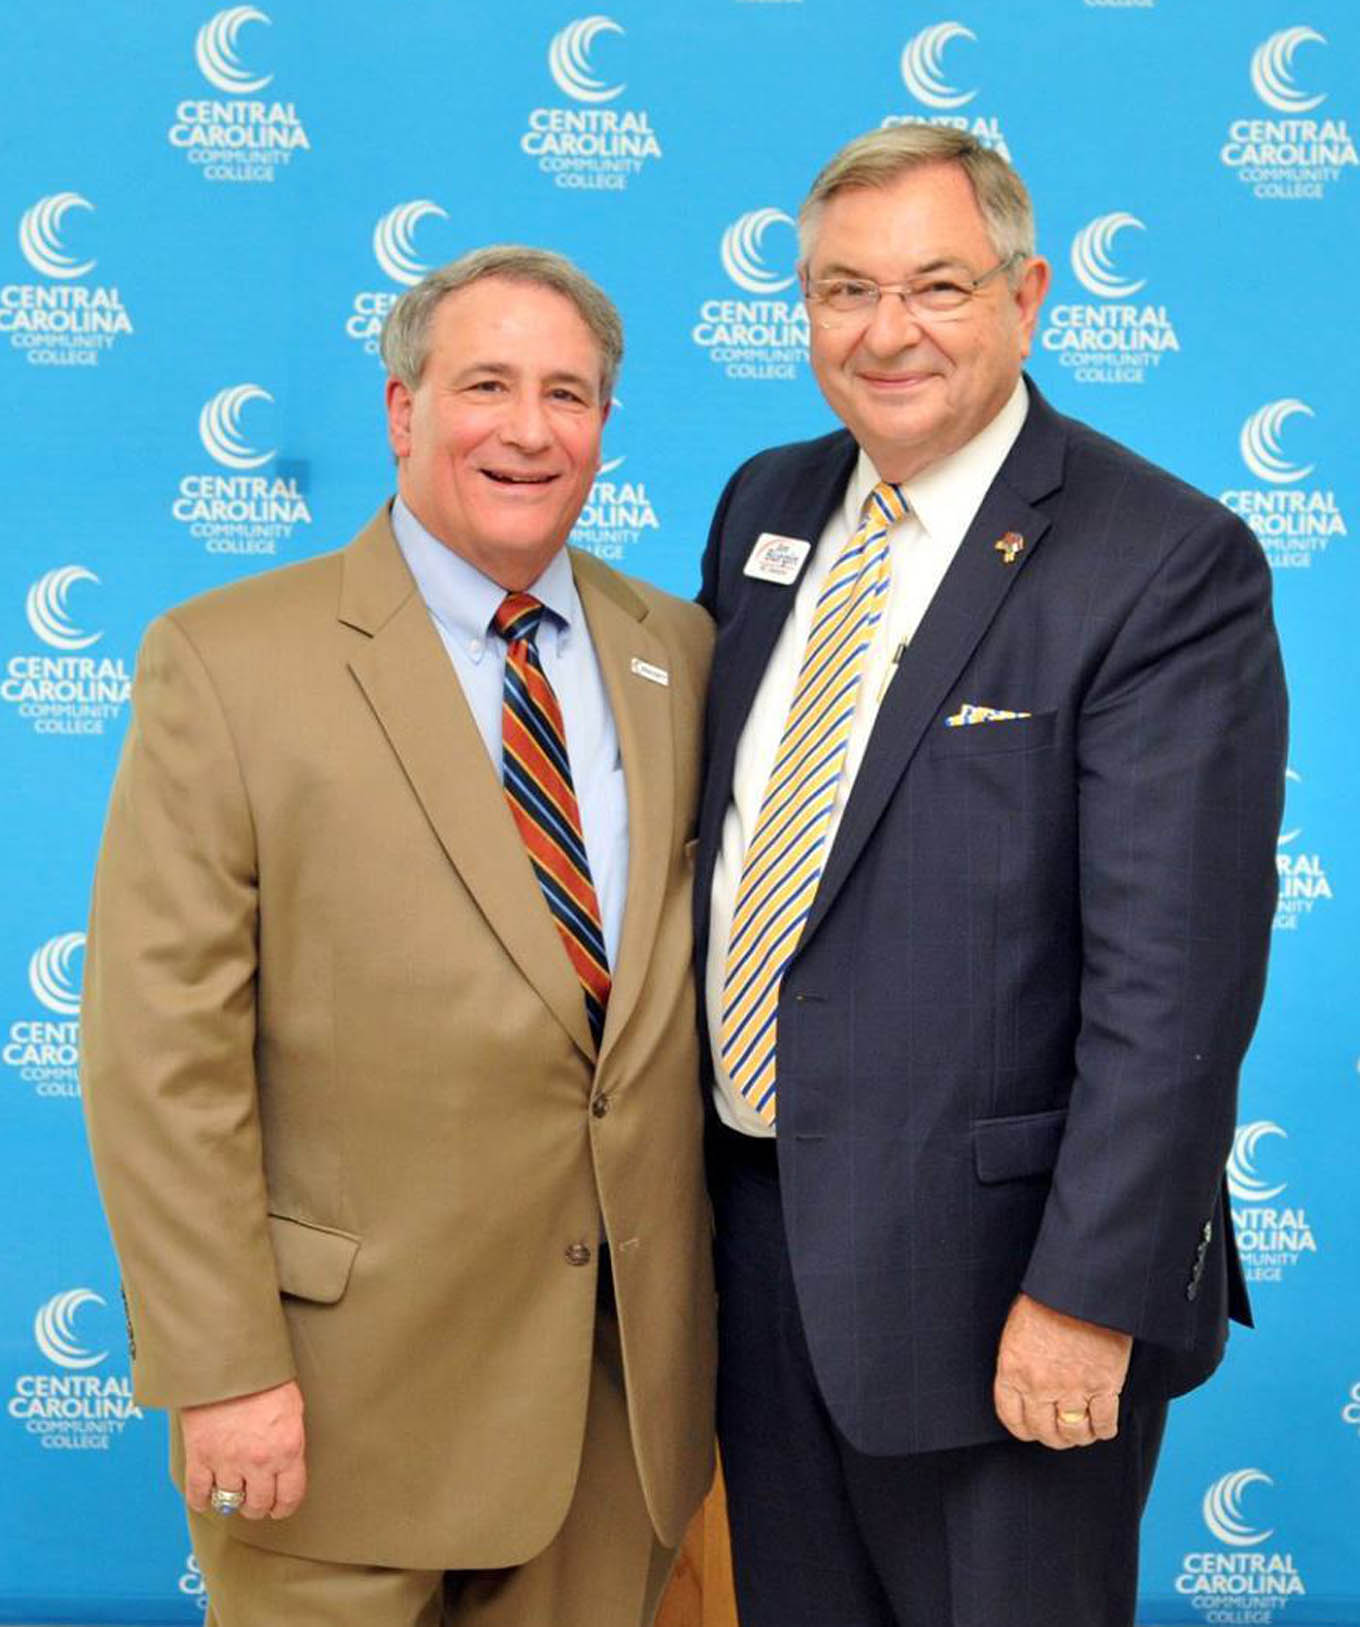 Click to enlarge,  Julian Philpott (left) and Jim Burgin have been reappointed as Chairman and Vice Chairman, respectively, of the Central Carolina Community College Board of Trustees for 2018-2019.